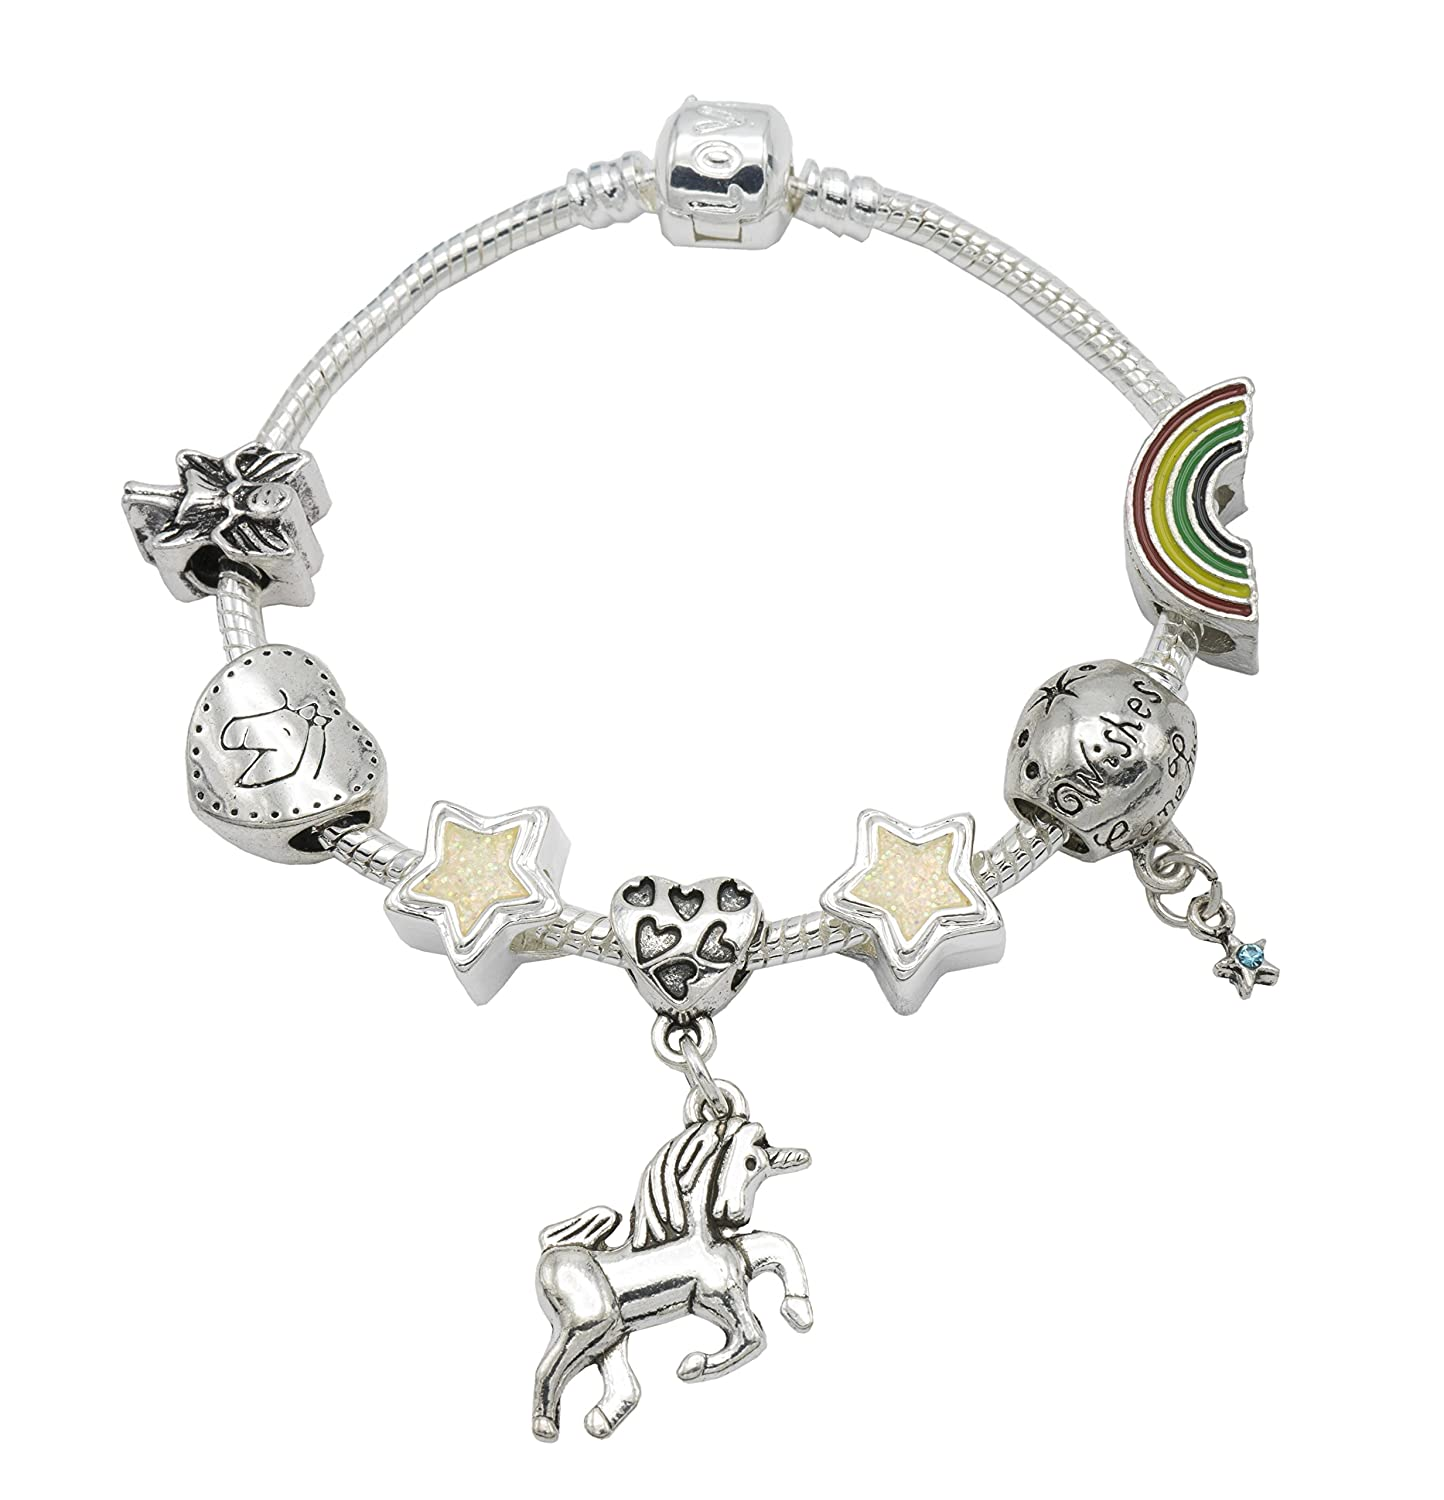 'I Believe in Unicorns' Children's Unicorn Bracelet for Girls with Gift Box - Girls Unicorn Jewellery Jewellery Hut BRUNICORN